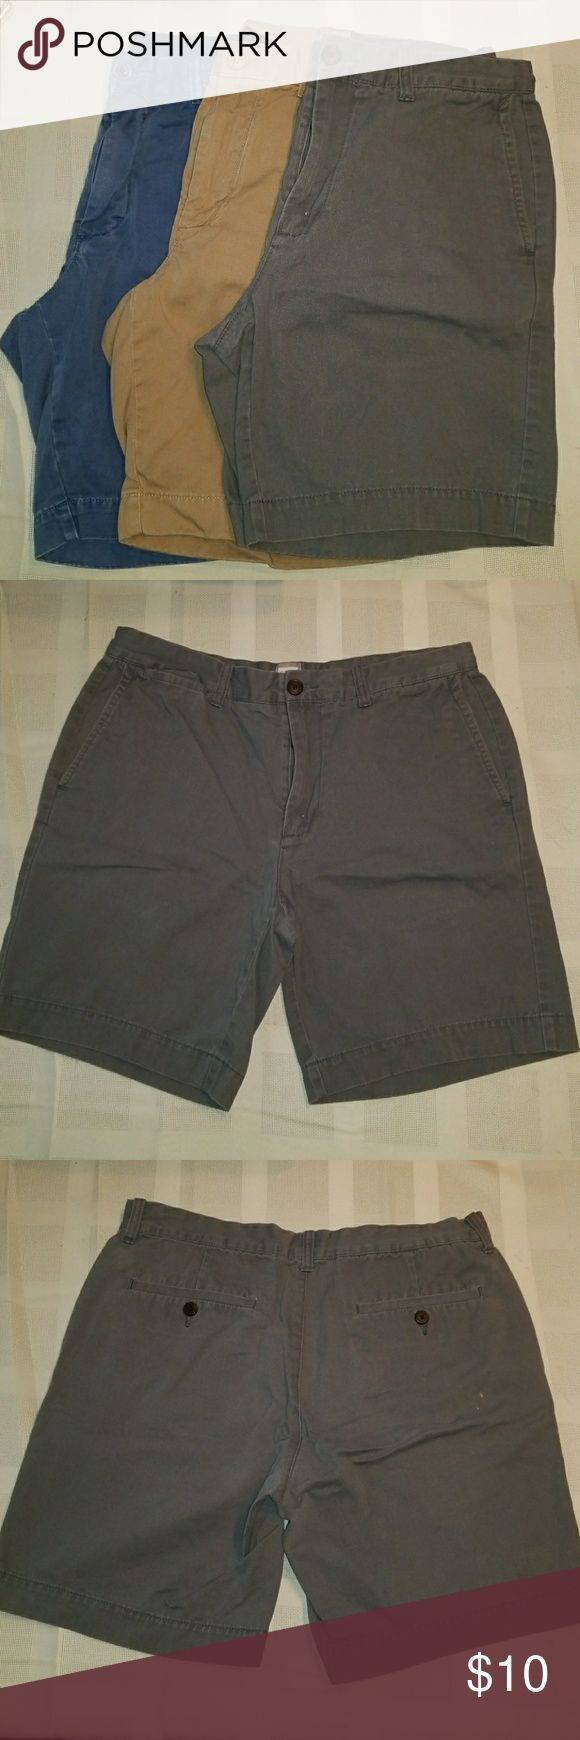 Jcrew jcpenny bulk of 3 mens khaki shorts Bulk of Comfortable khaki shorts... 1 jcrew(tan) 2 jcpenney... Used and washed... very tiny discoloration spots J. Crew Shorts Flat Front